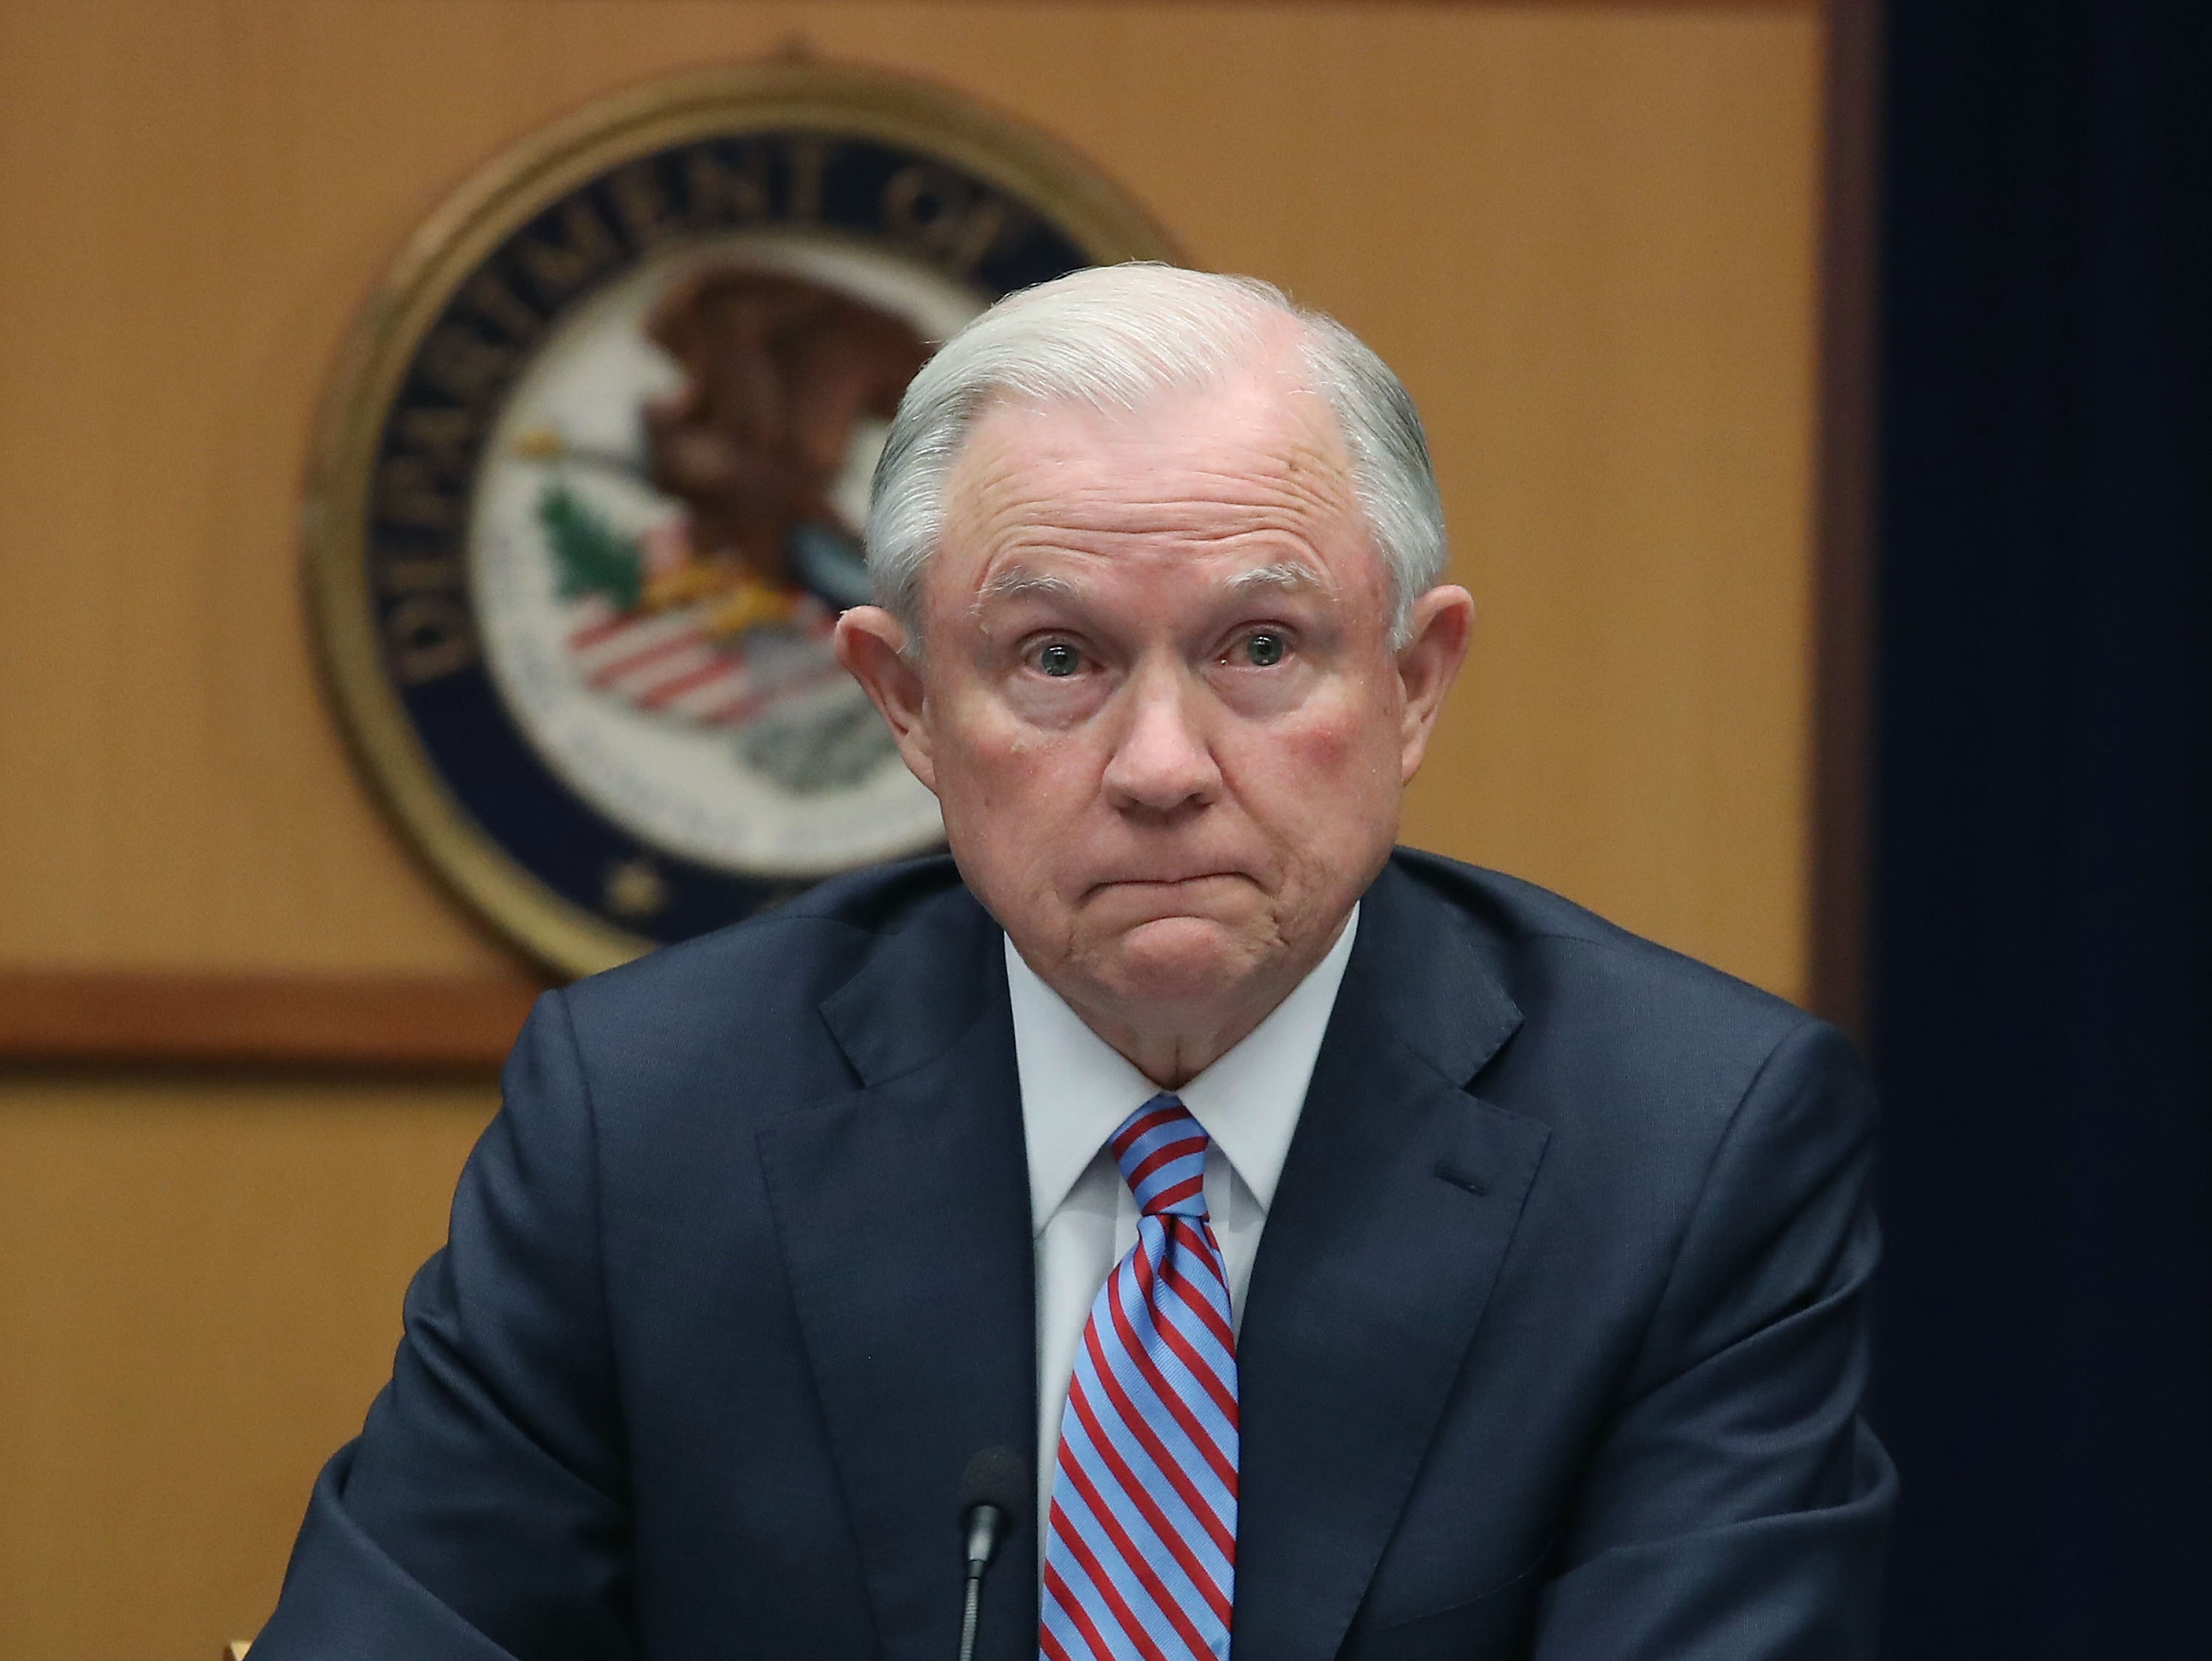 Attorney General Jeff Sessions speaks about organized gang violence at the Department of Justice, April 18, 2016 in Washington, D.C.